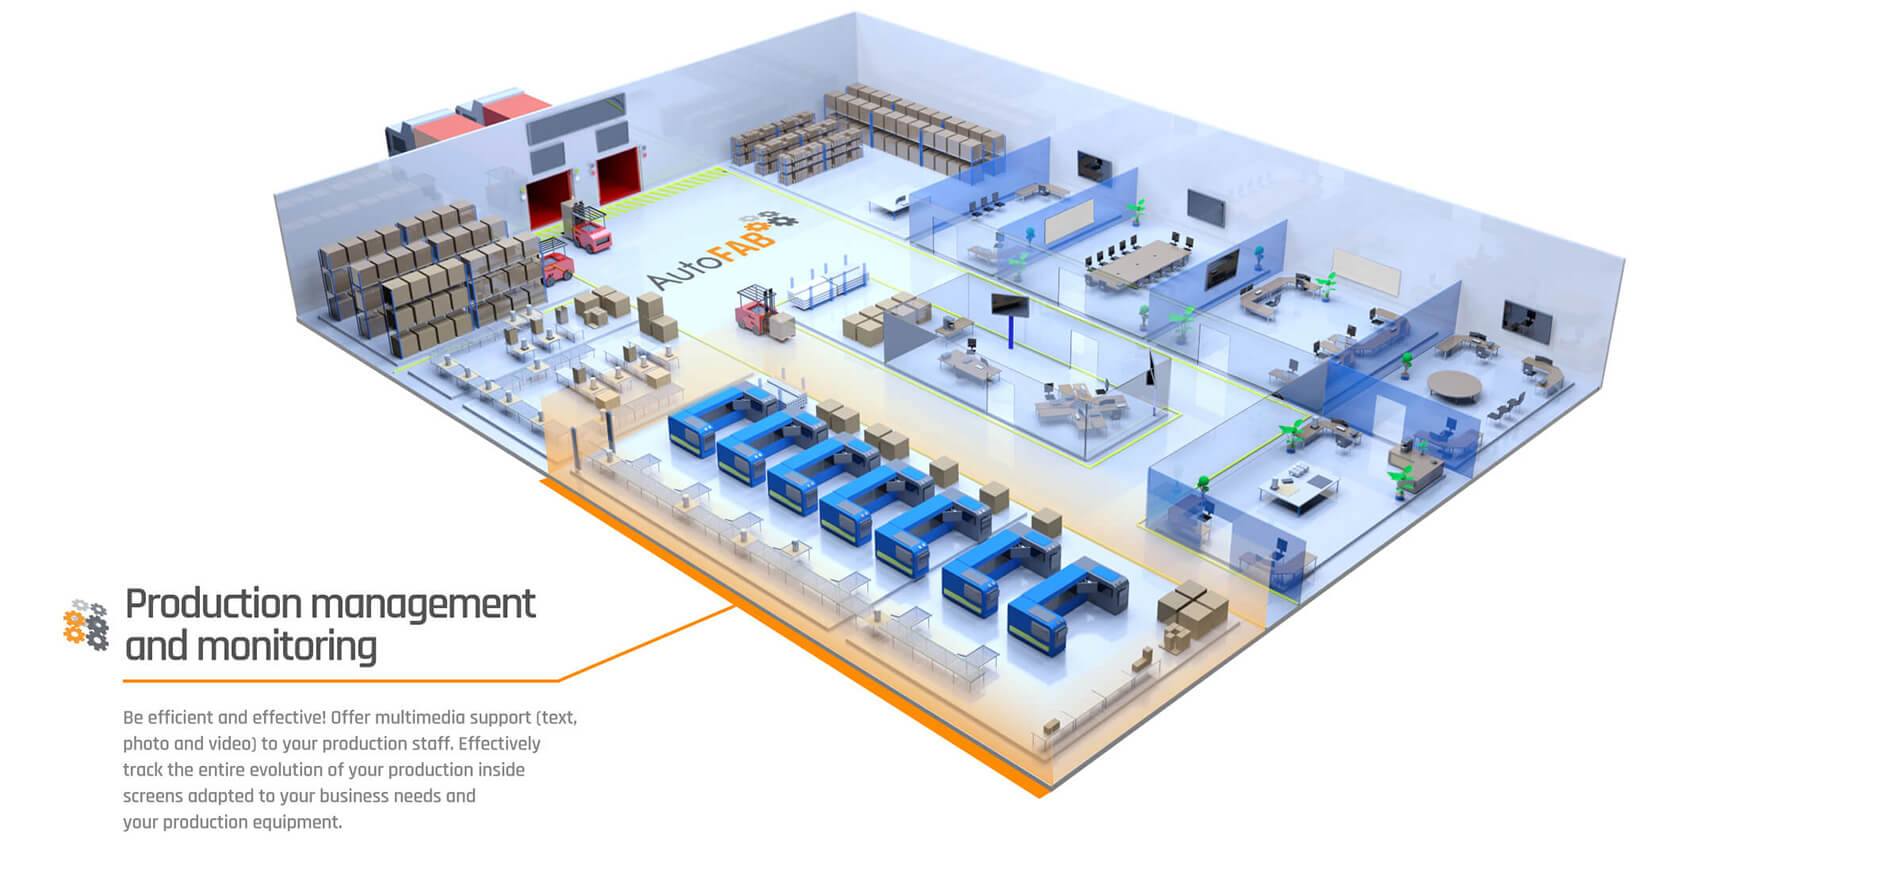 autofab Production management and monitoring